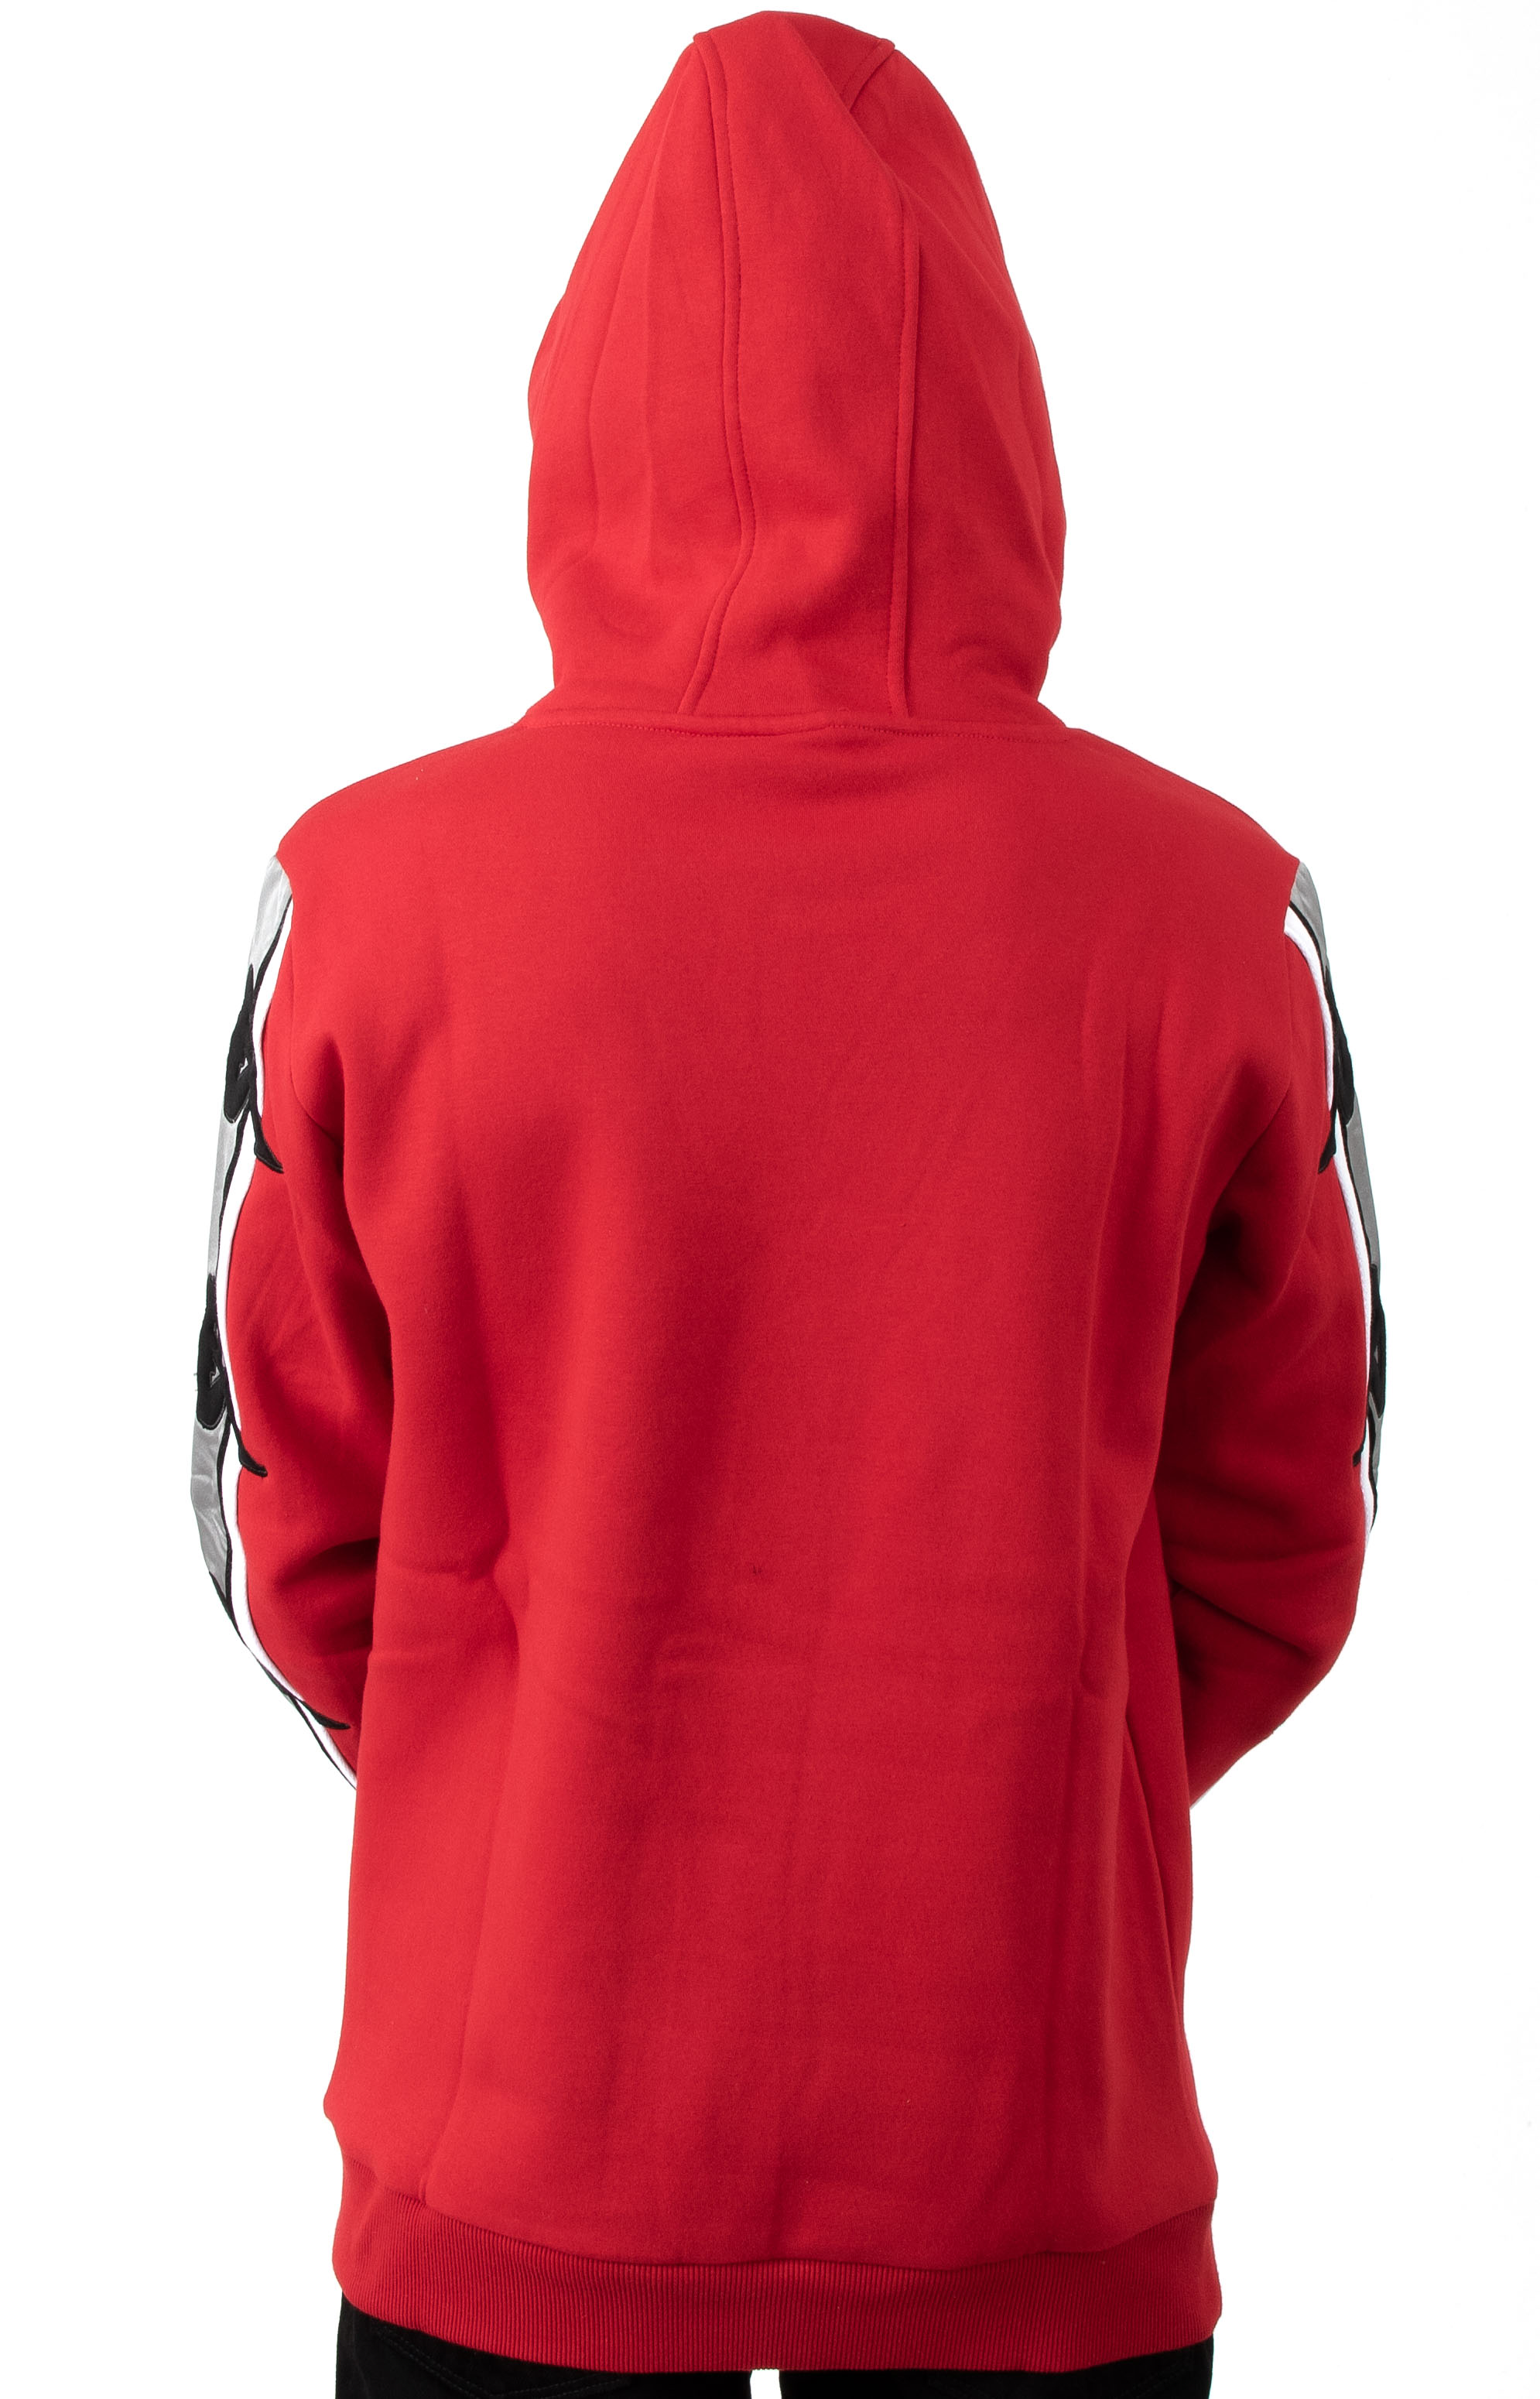 Authentic Bzaliab Pullover Hoodie - Red DK/Grey Silver 3